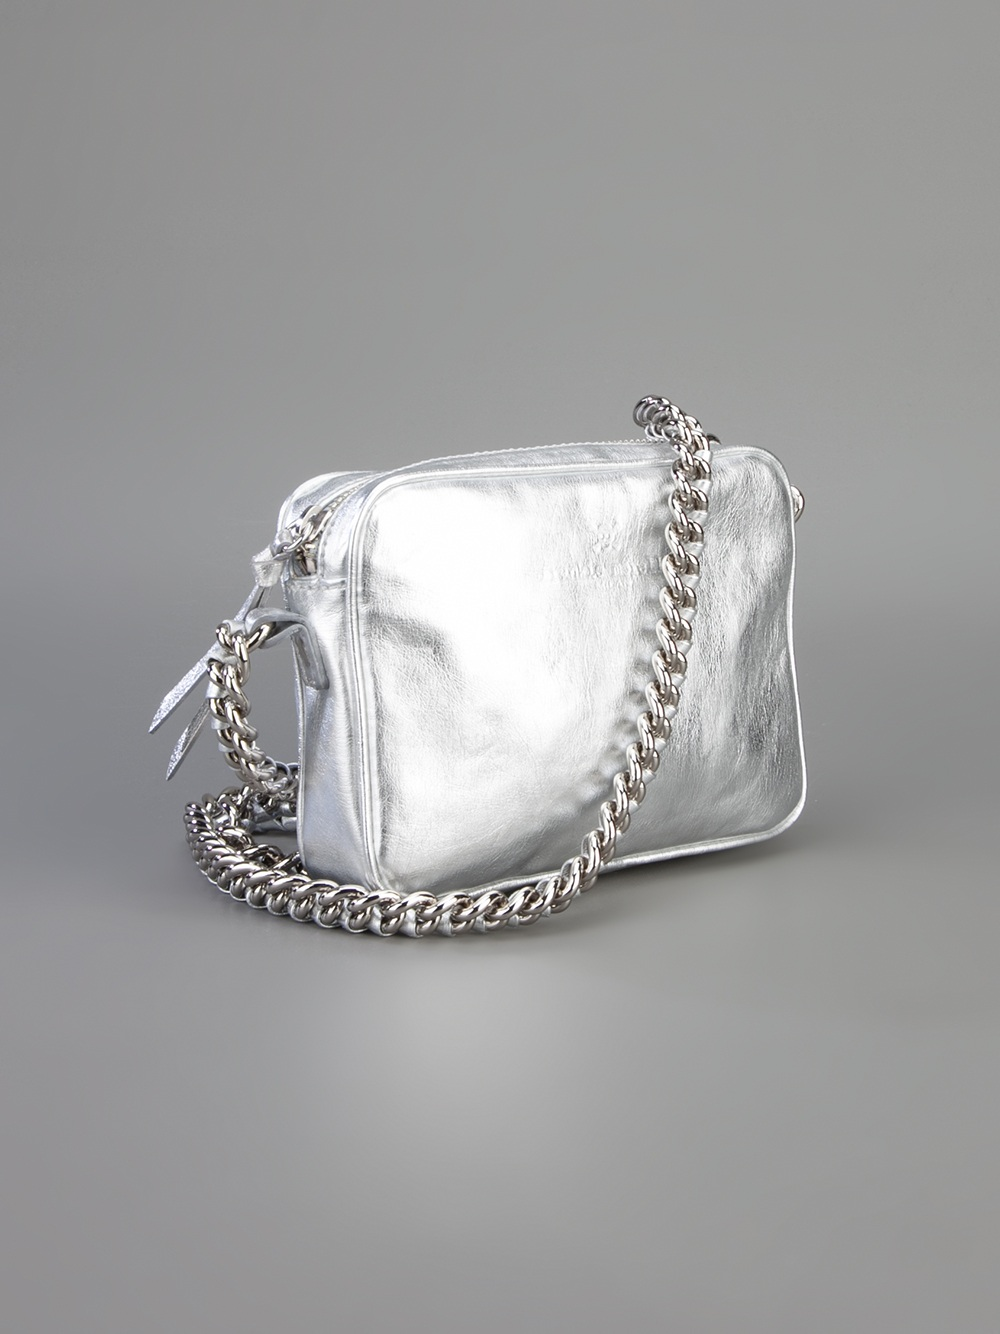 Frankie Morello Small Shoulder Bag In Silver Metallic Lyst